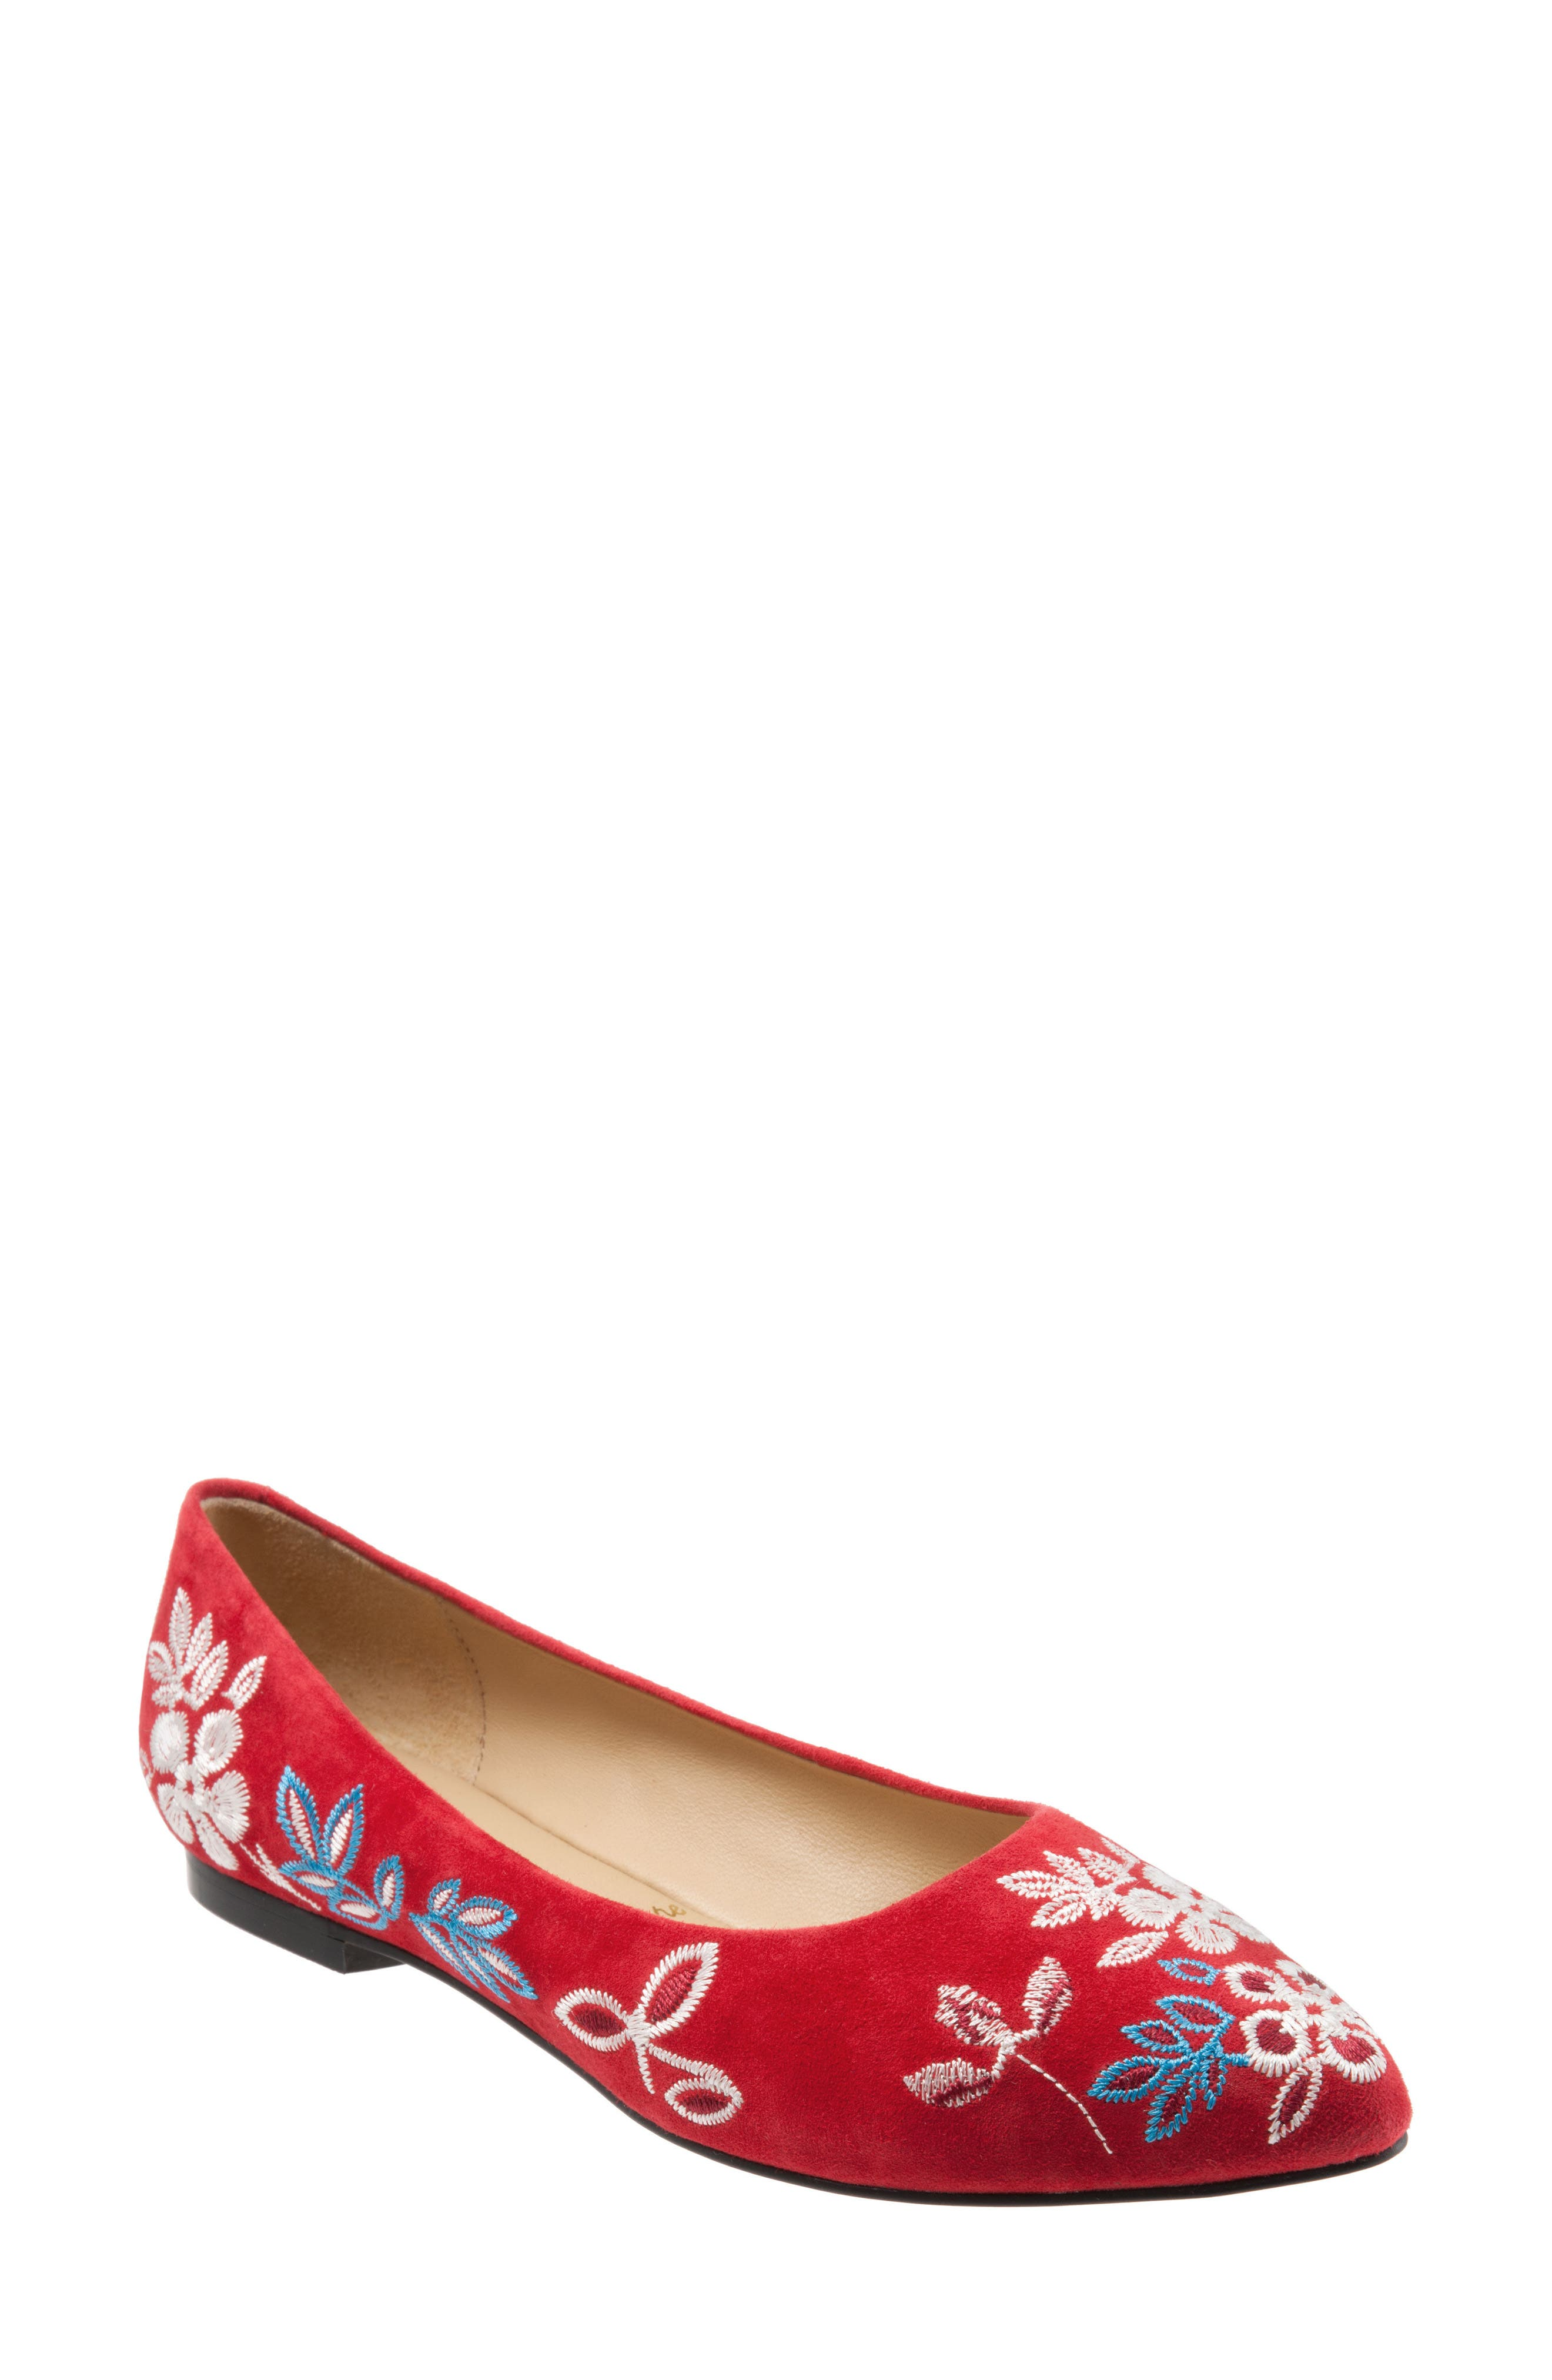 Retro Vintage Flats and Low Heel Shoes Womens Trotters Estee Pointed Toe Flat Size 7.5 W - Red $224.95 AT vintagedancer.com